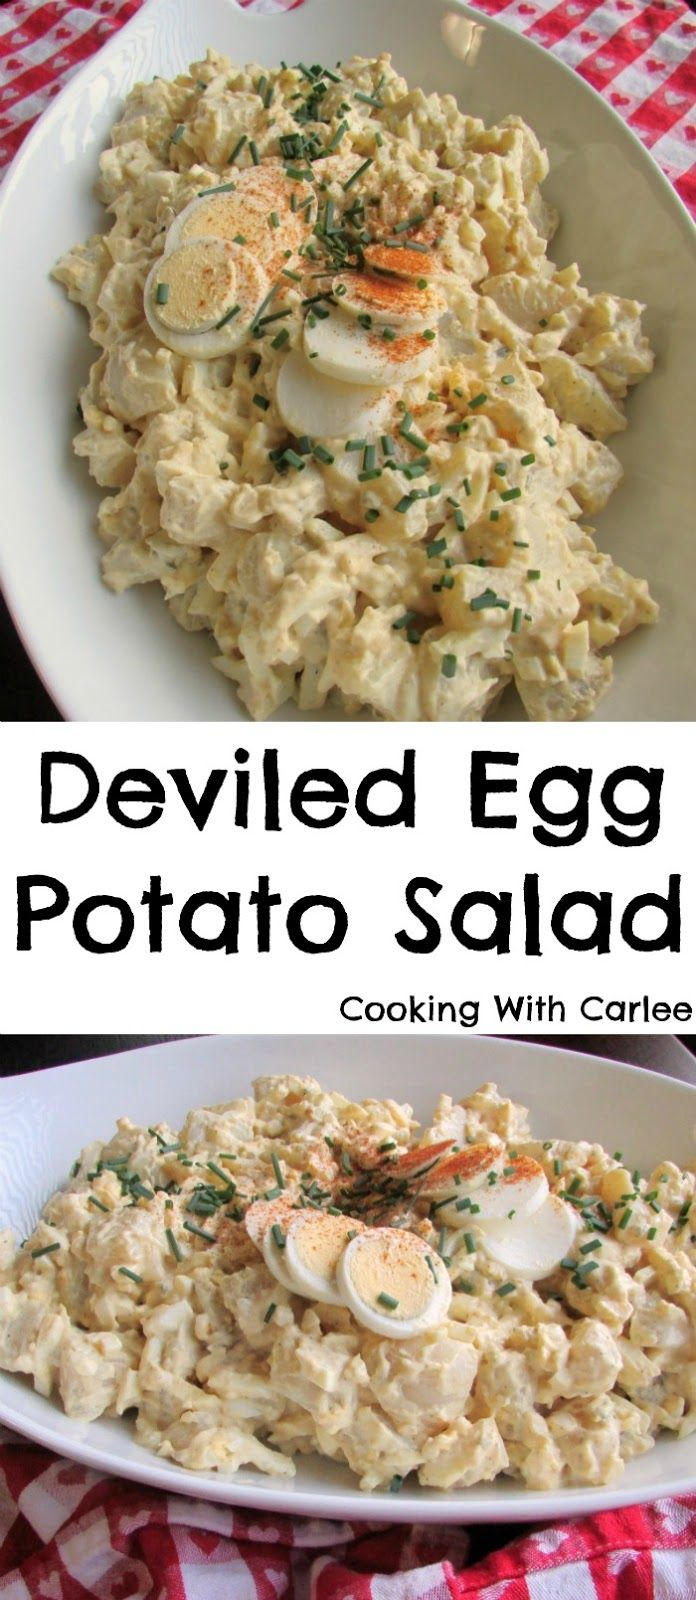 378 best images about cooking with carlee on pinterest for How to make homemade deviled egg potato salad